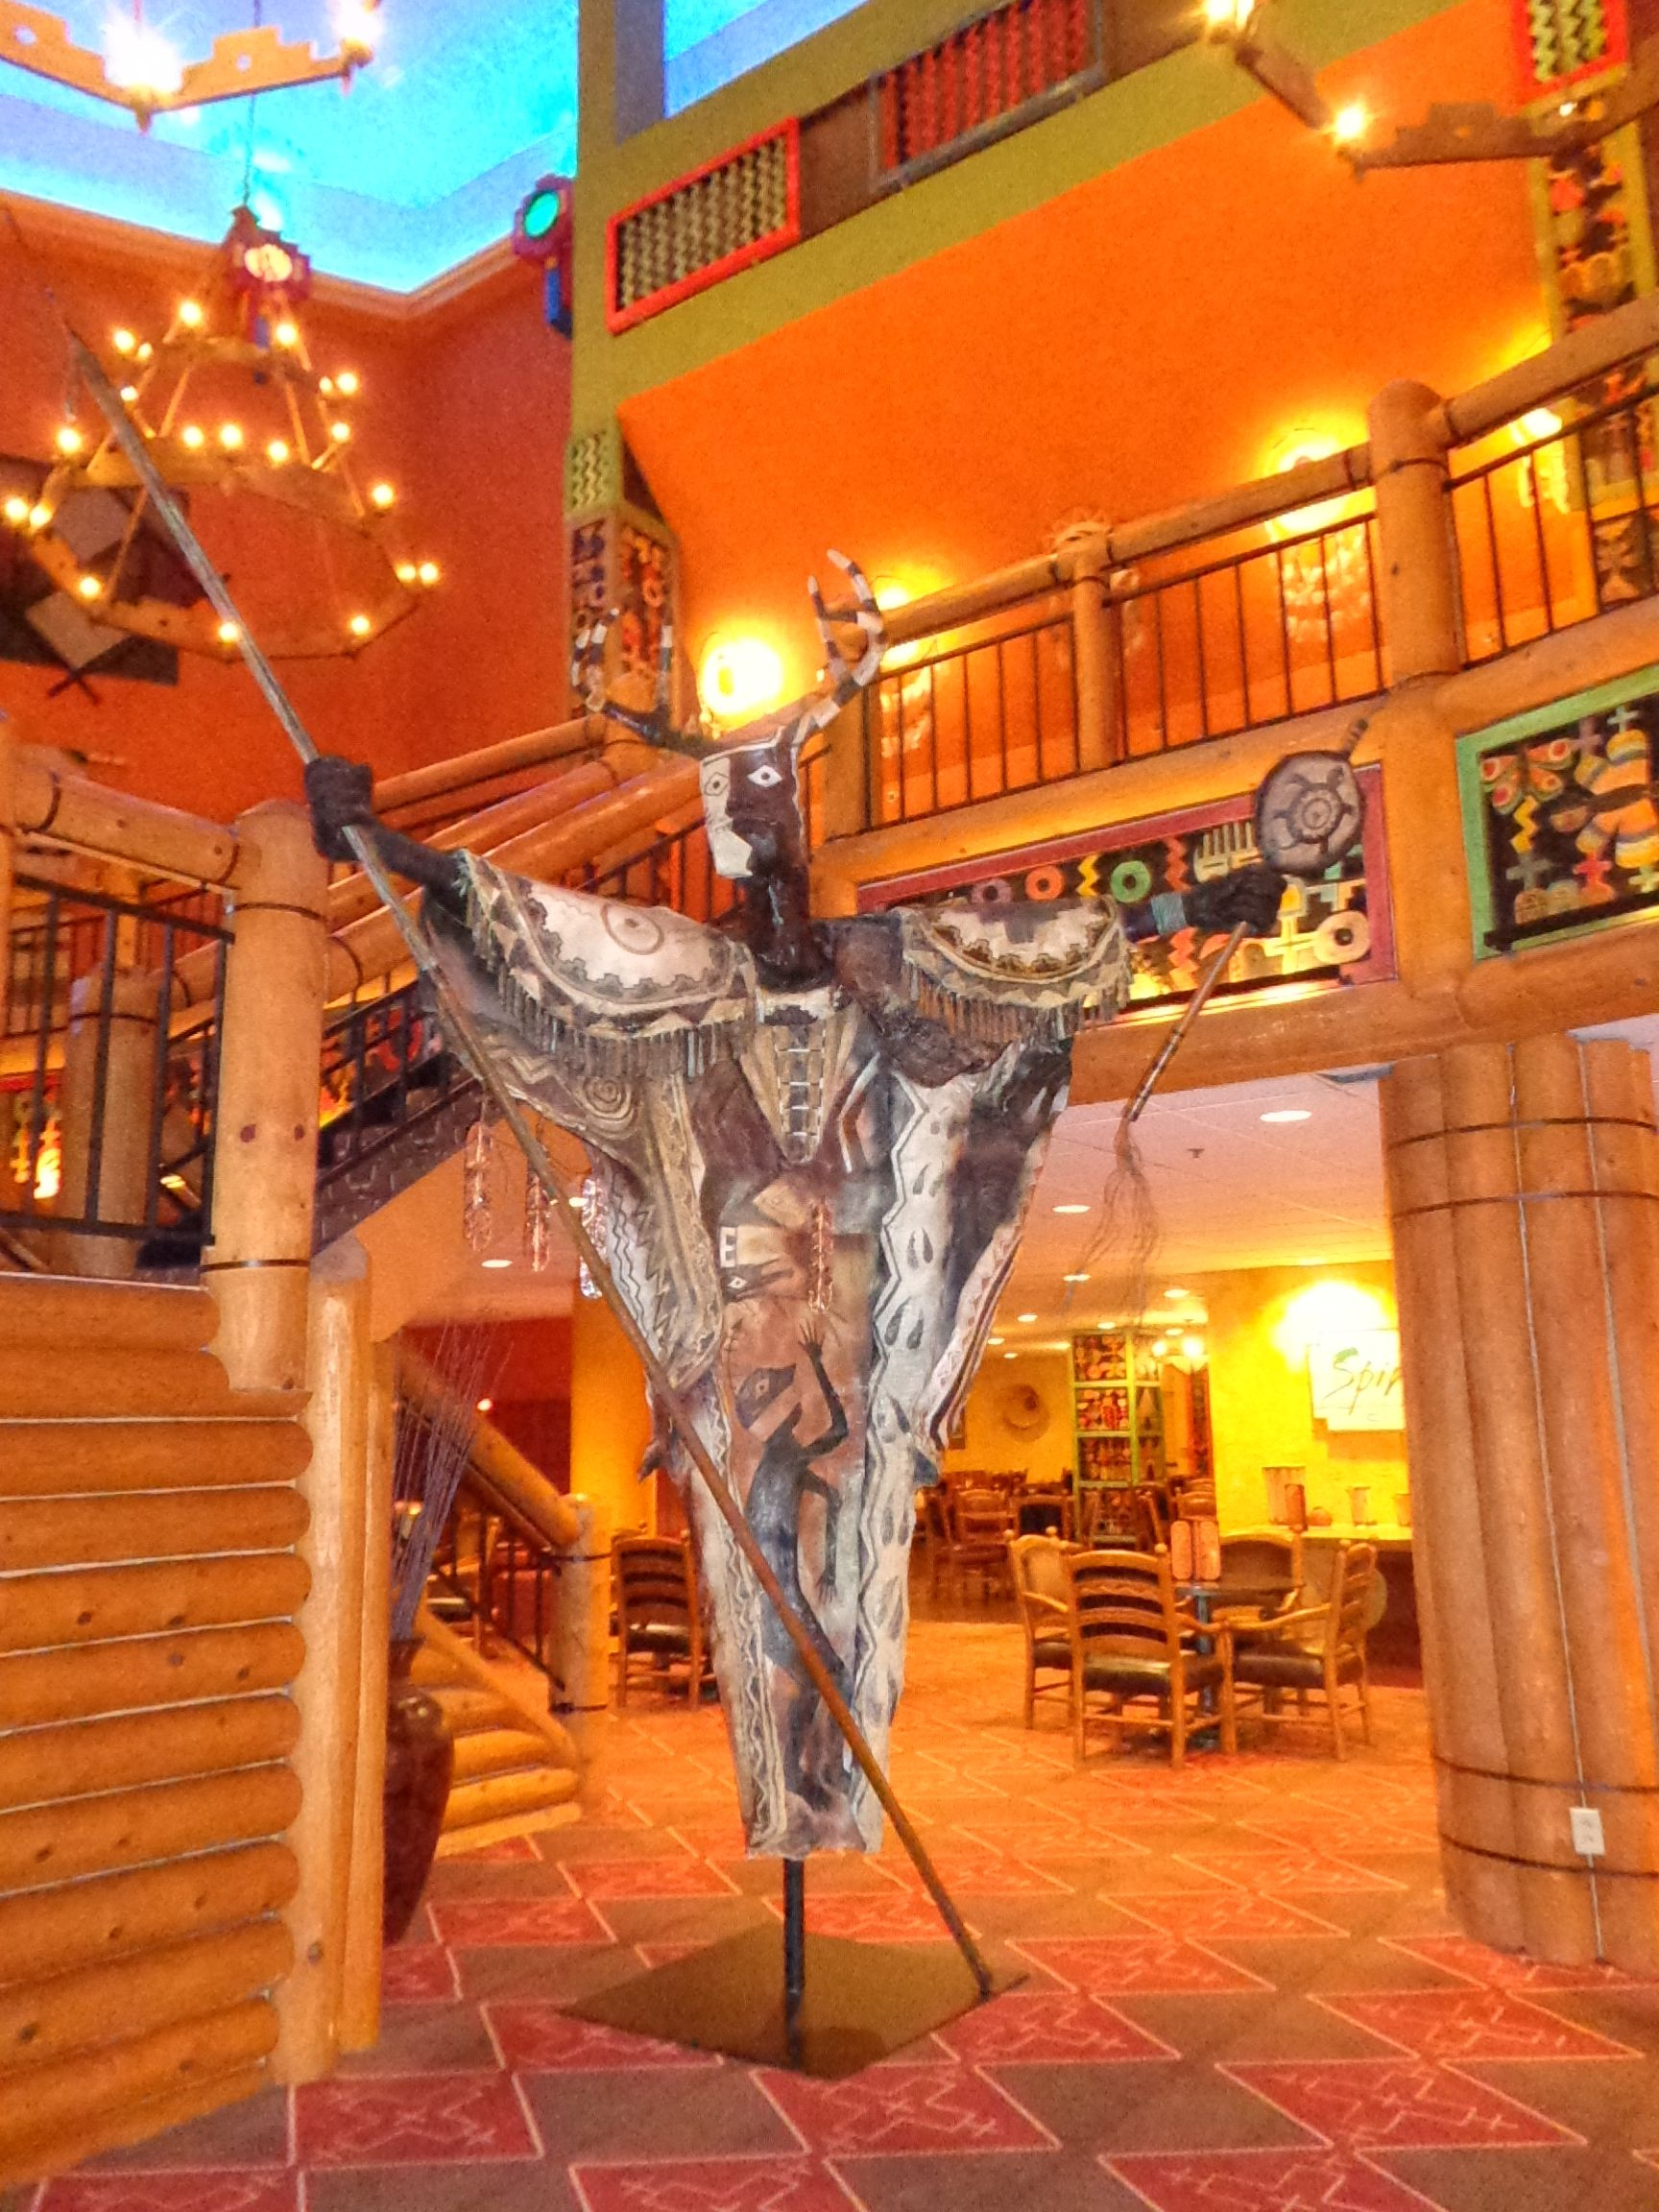 Nativo Lodge, Albuquerque, New Mexico. Not one inch of this place isn't fascinating! - Photo by Ronni